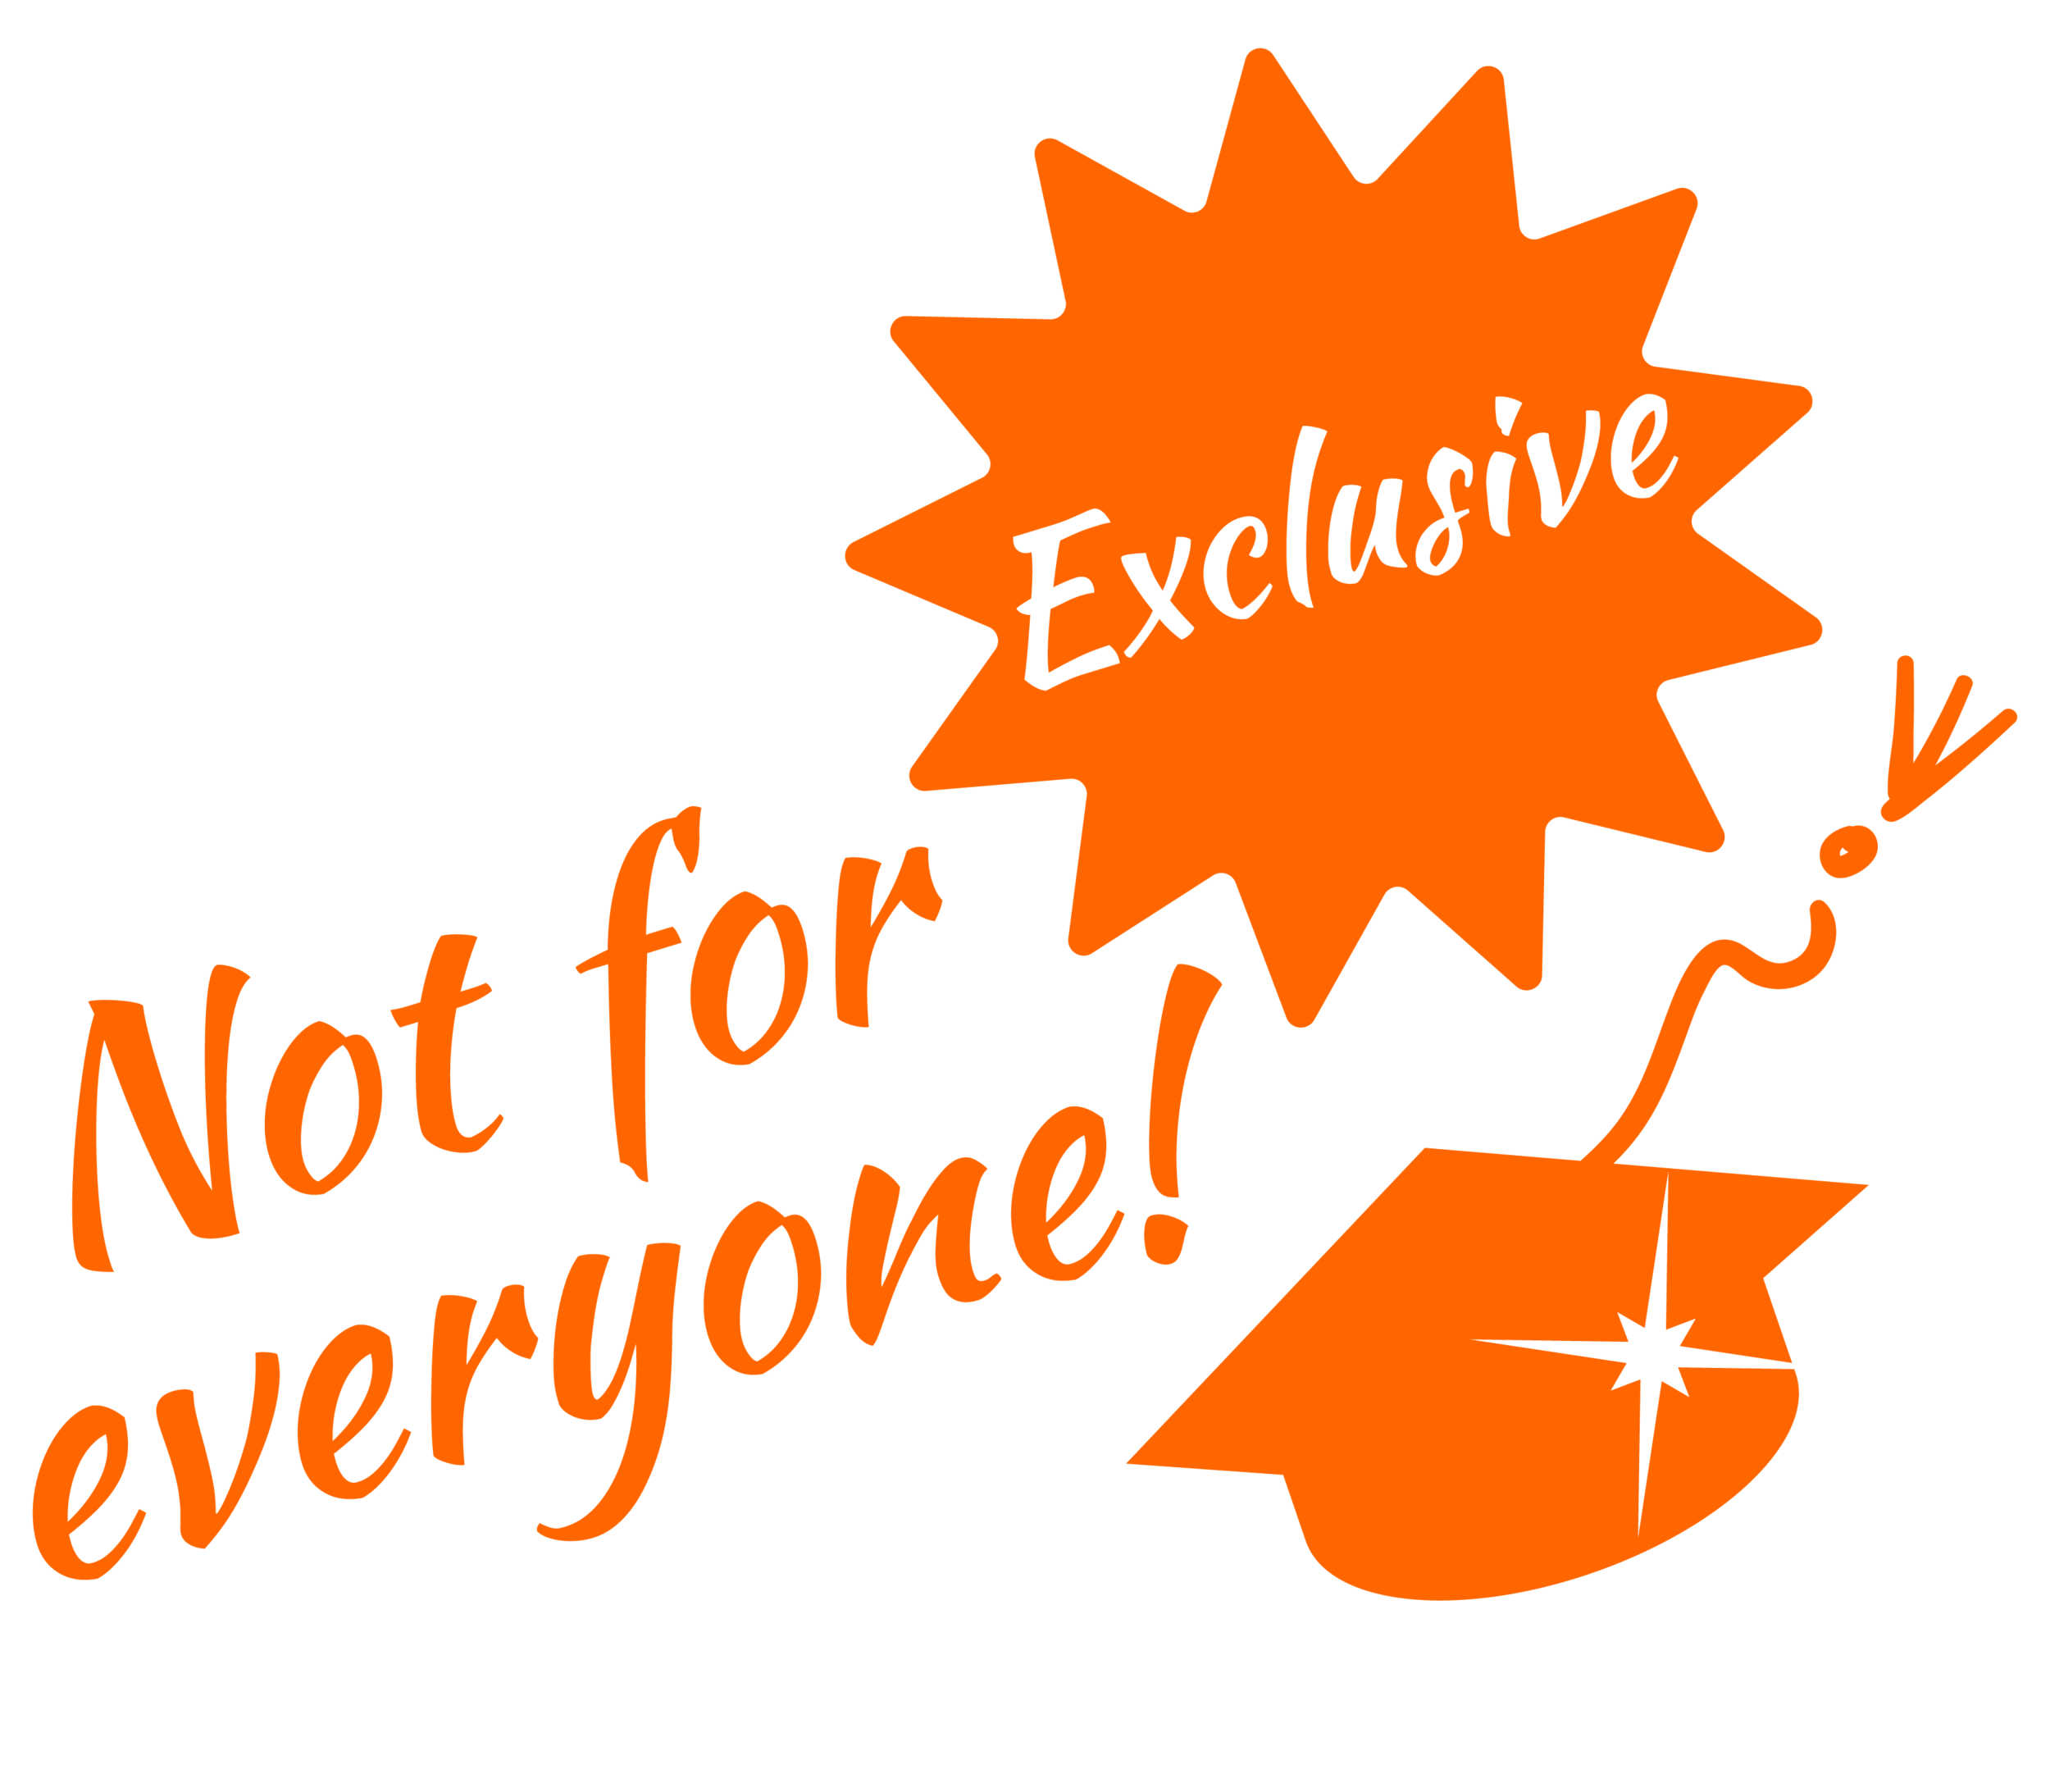 stickers_orange_exclusive.png